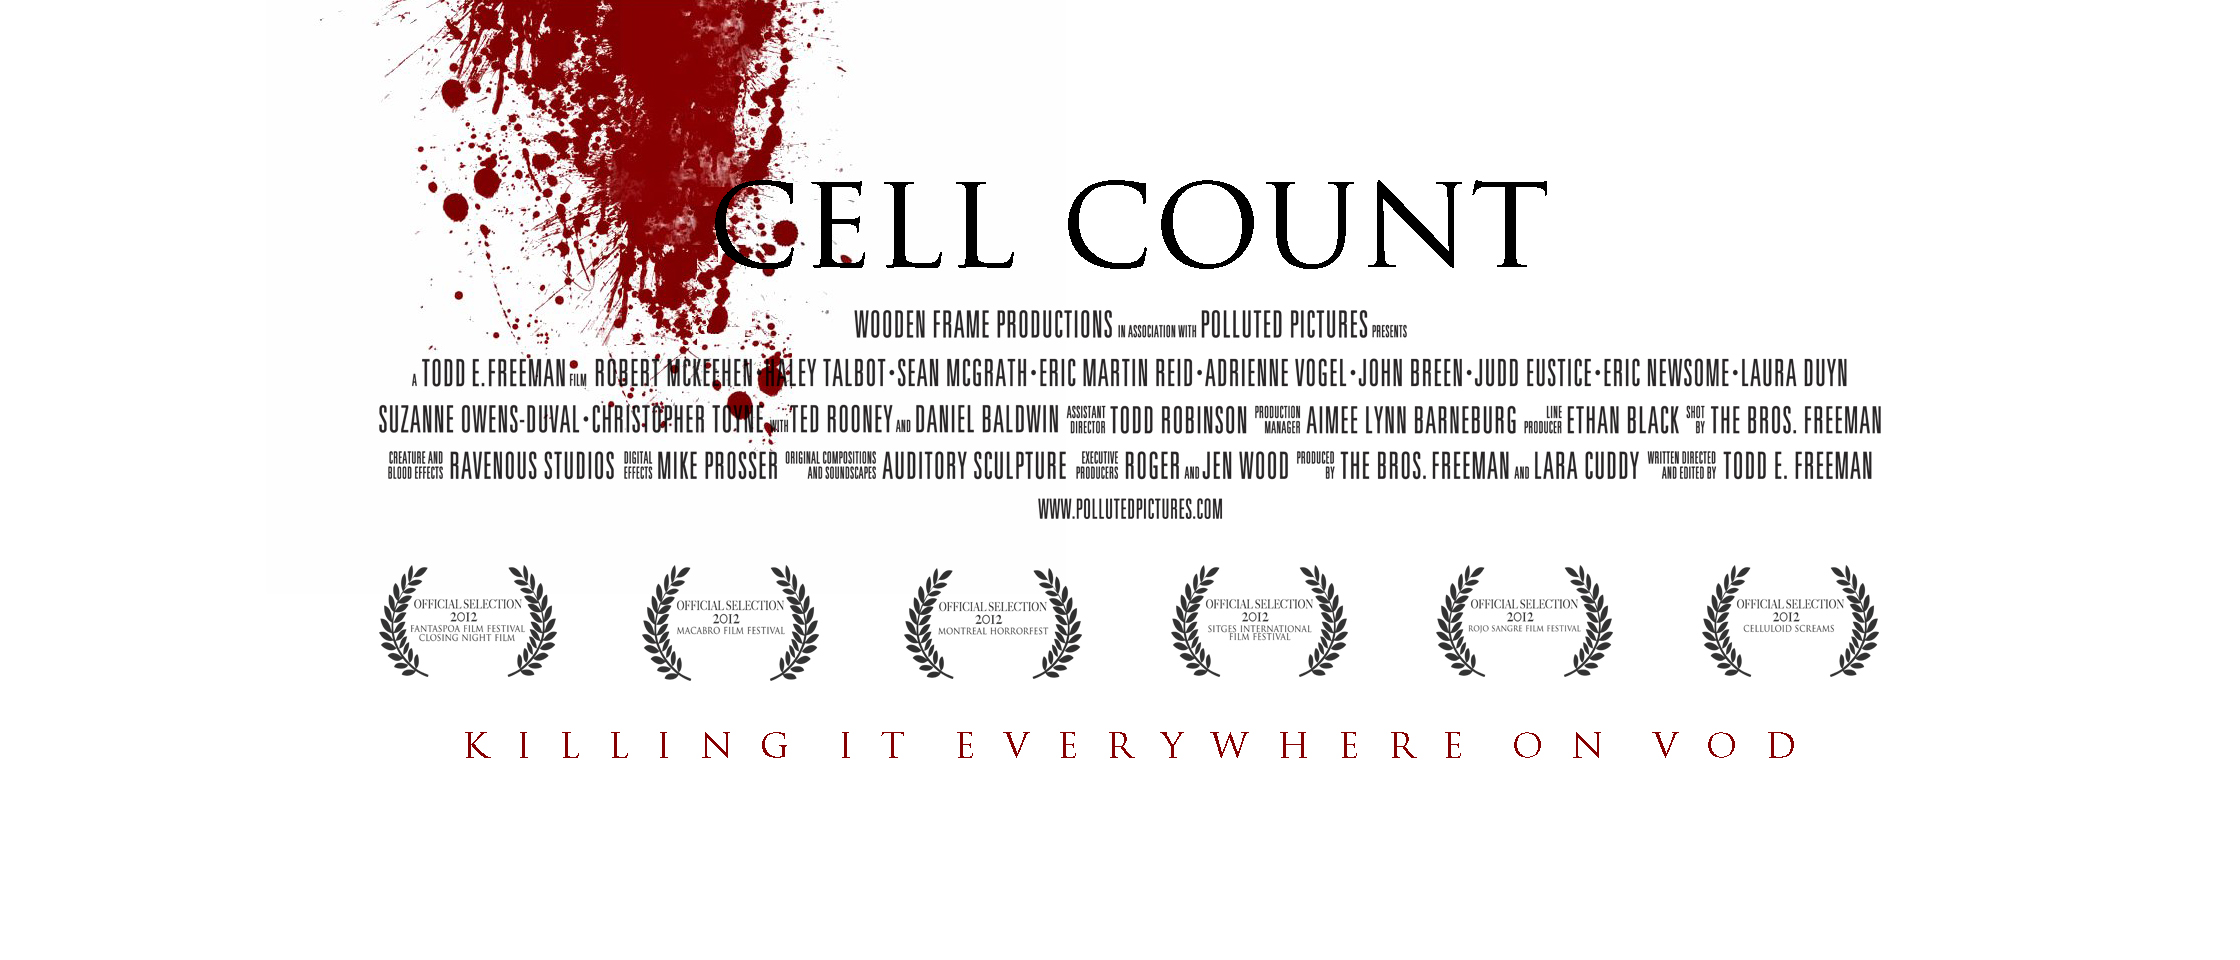 #CellCount